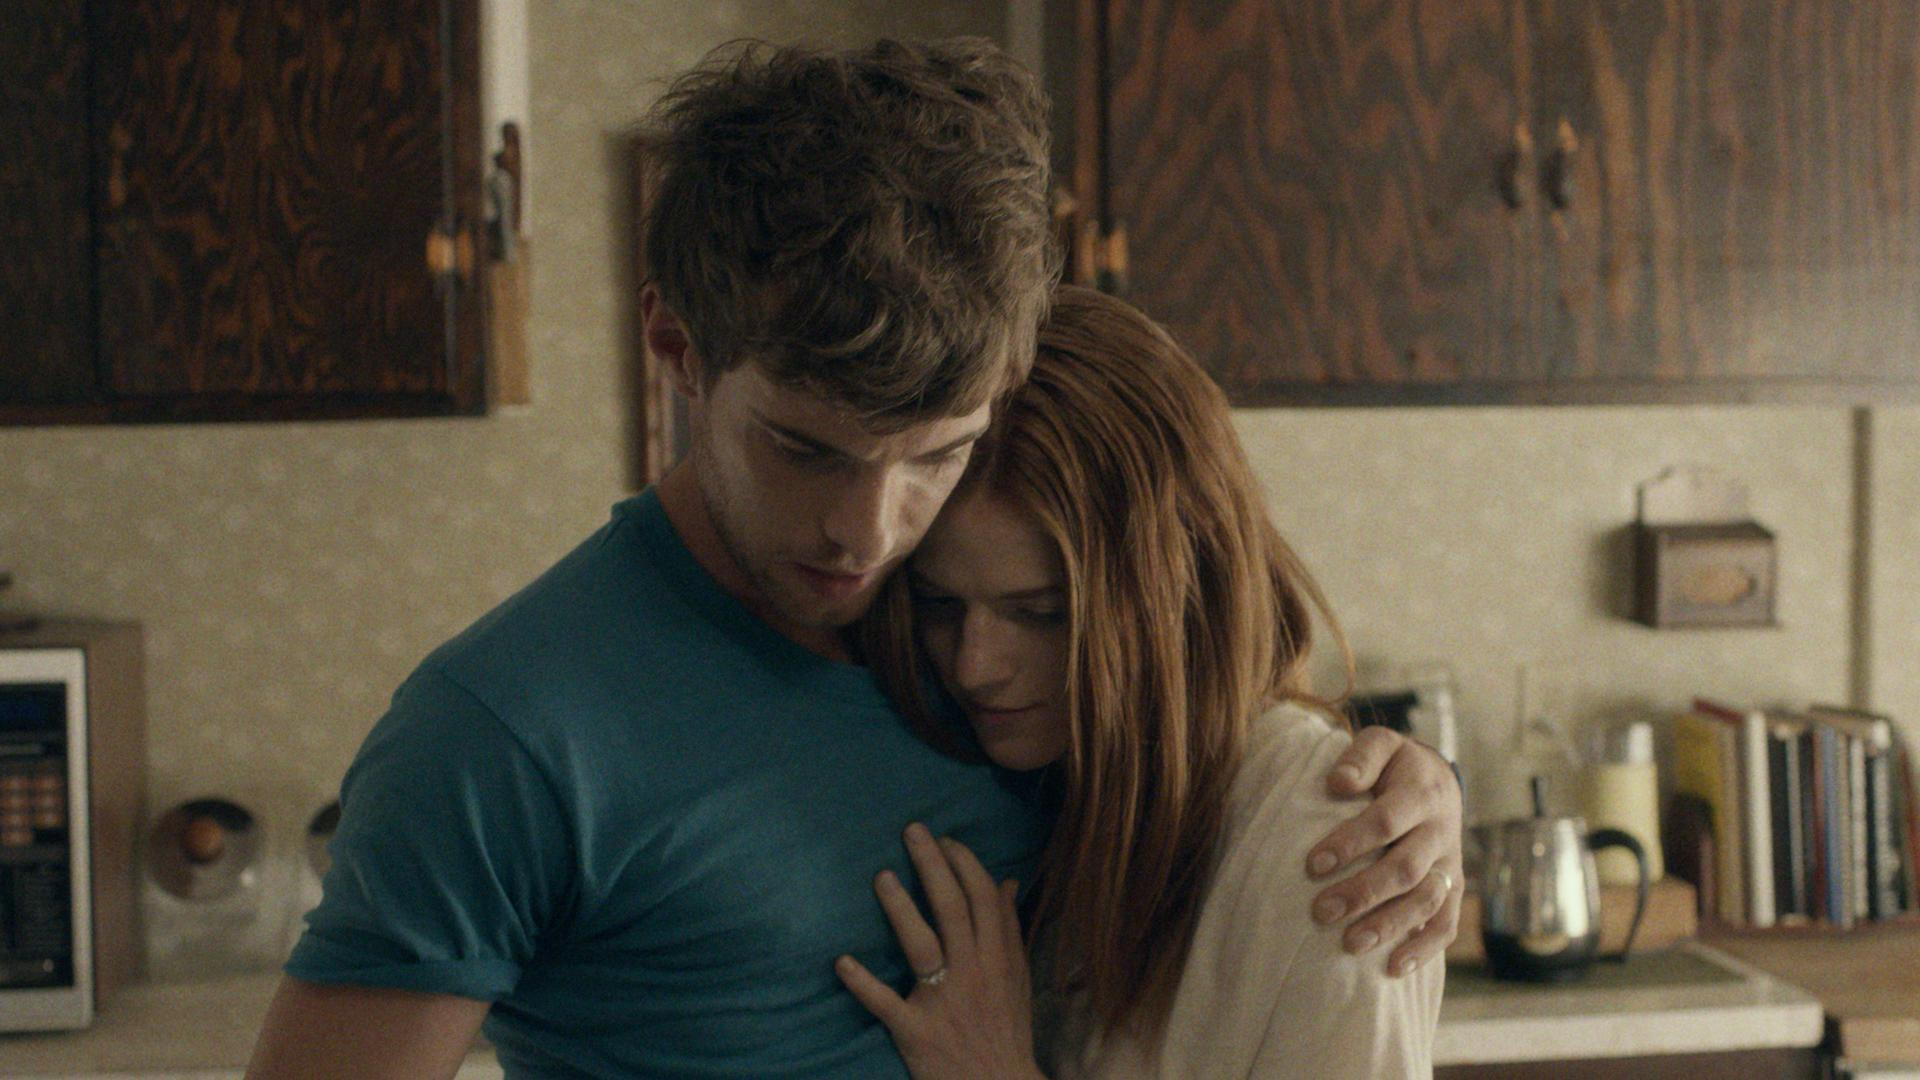 still-of-harry-treadaway-and-rose-leslie-in-honeymoon-2014-large-picture.jpg